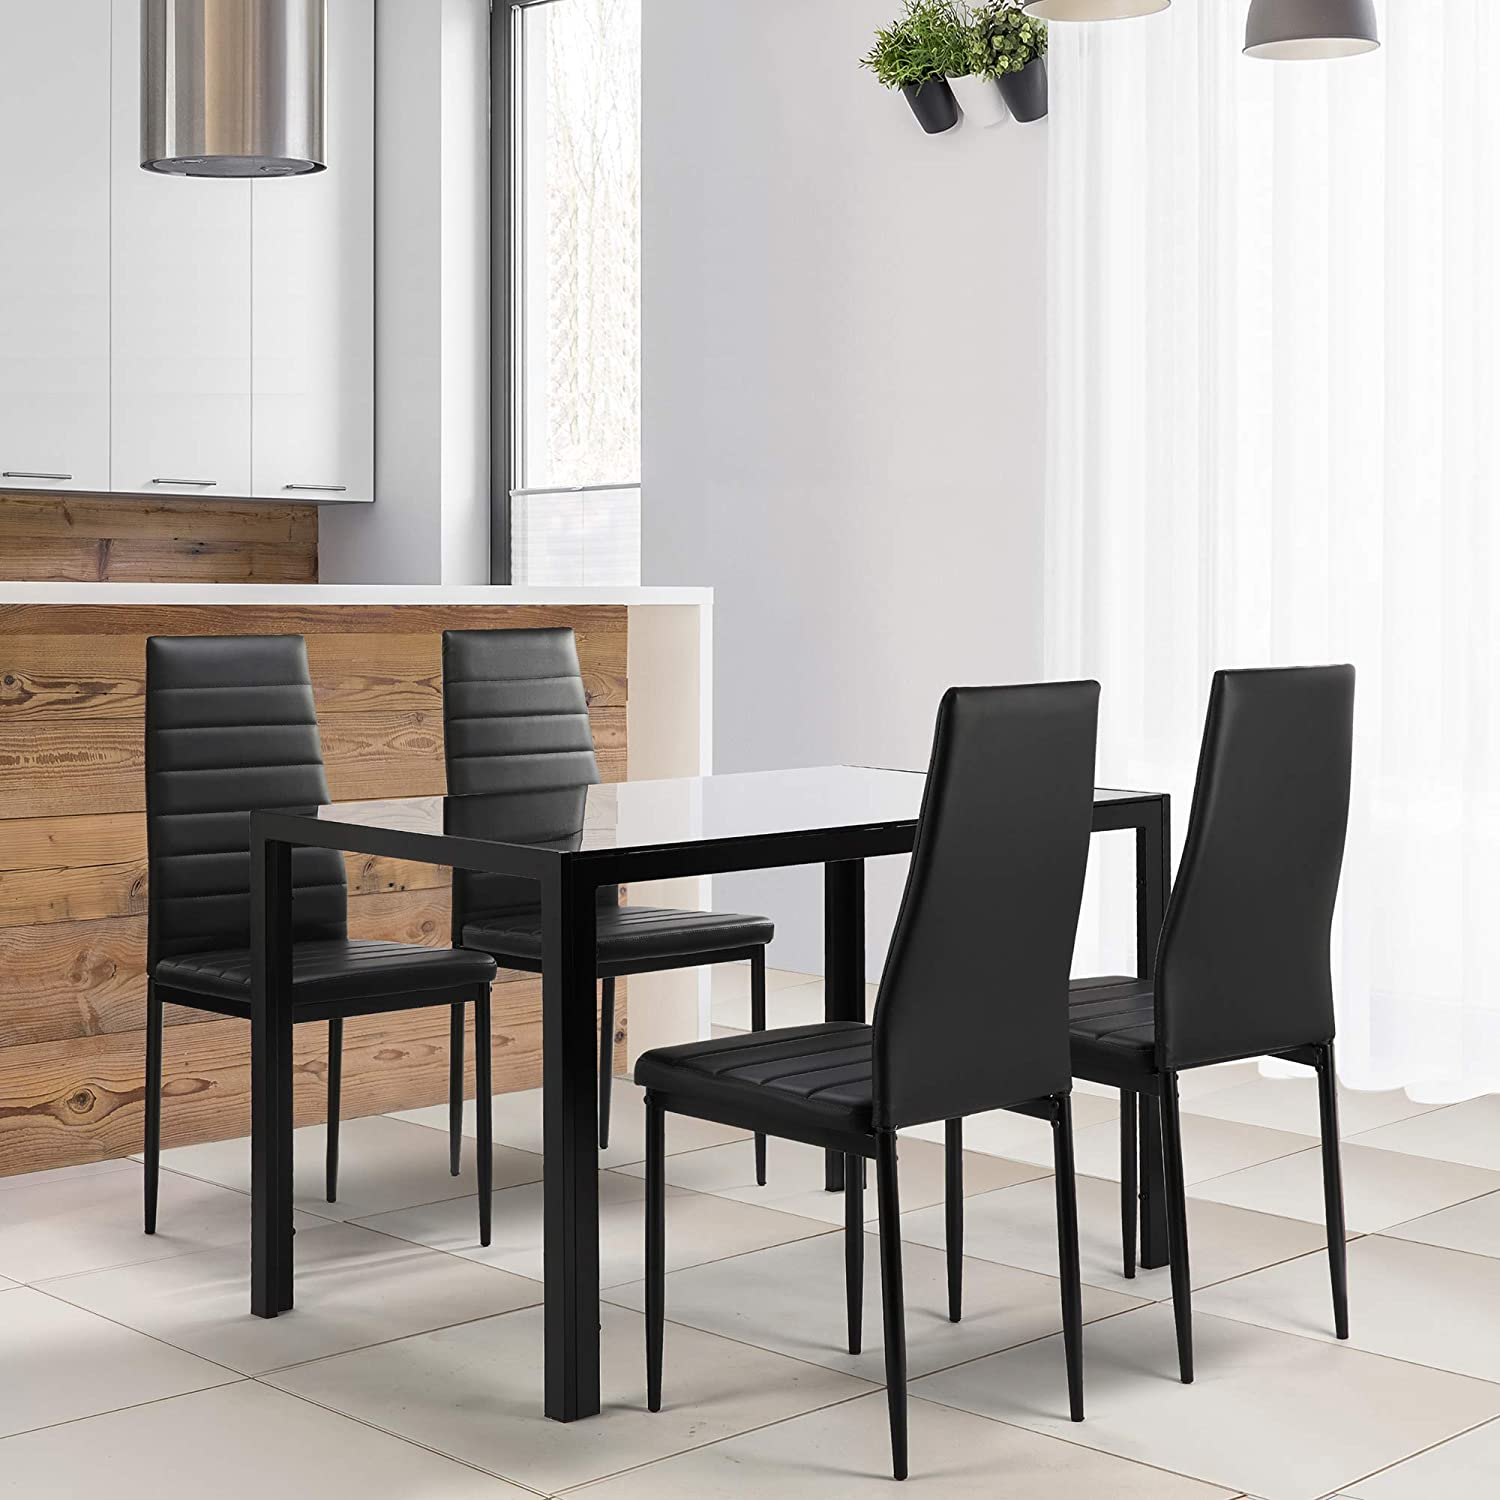 Baysitone 5 Pieces Dining Table 《週末限定タイムセール》 Set 特売 Tabl Tempered Top Glass with